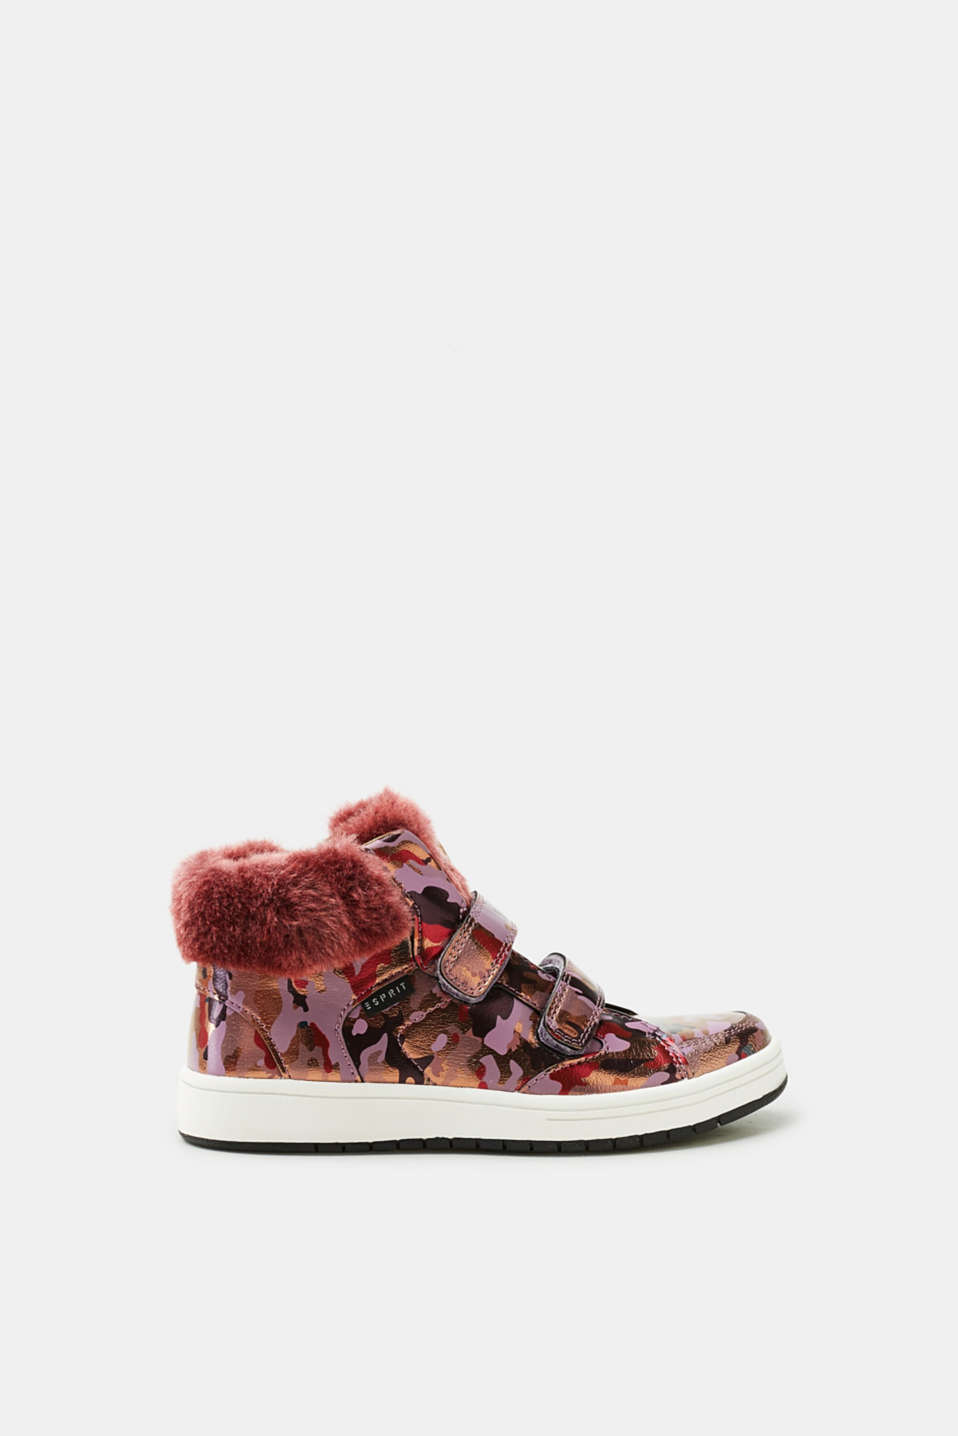 Esprit - High-top trainers with a metallic camouflage pattern